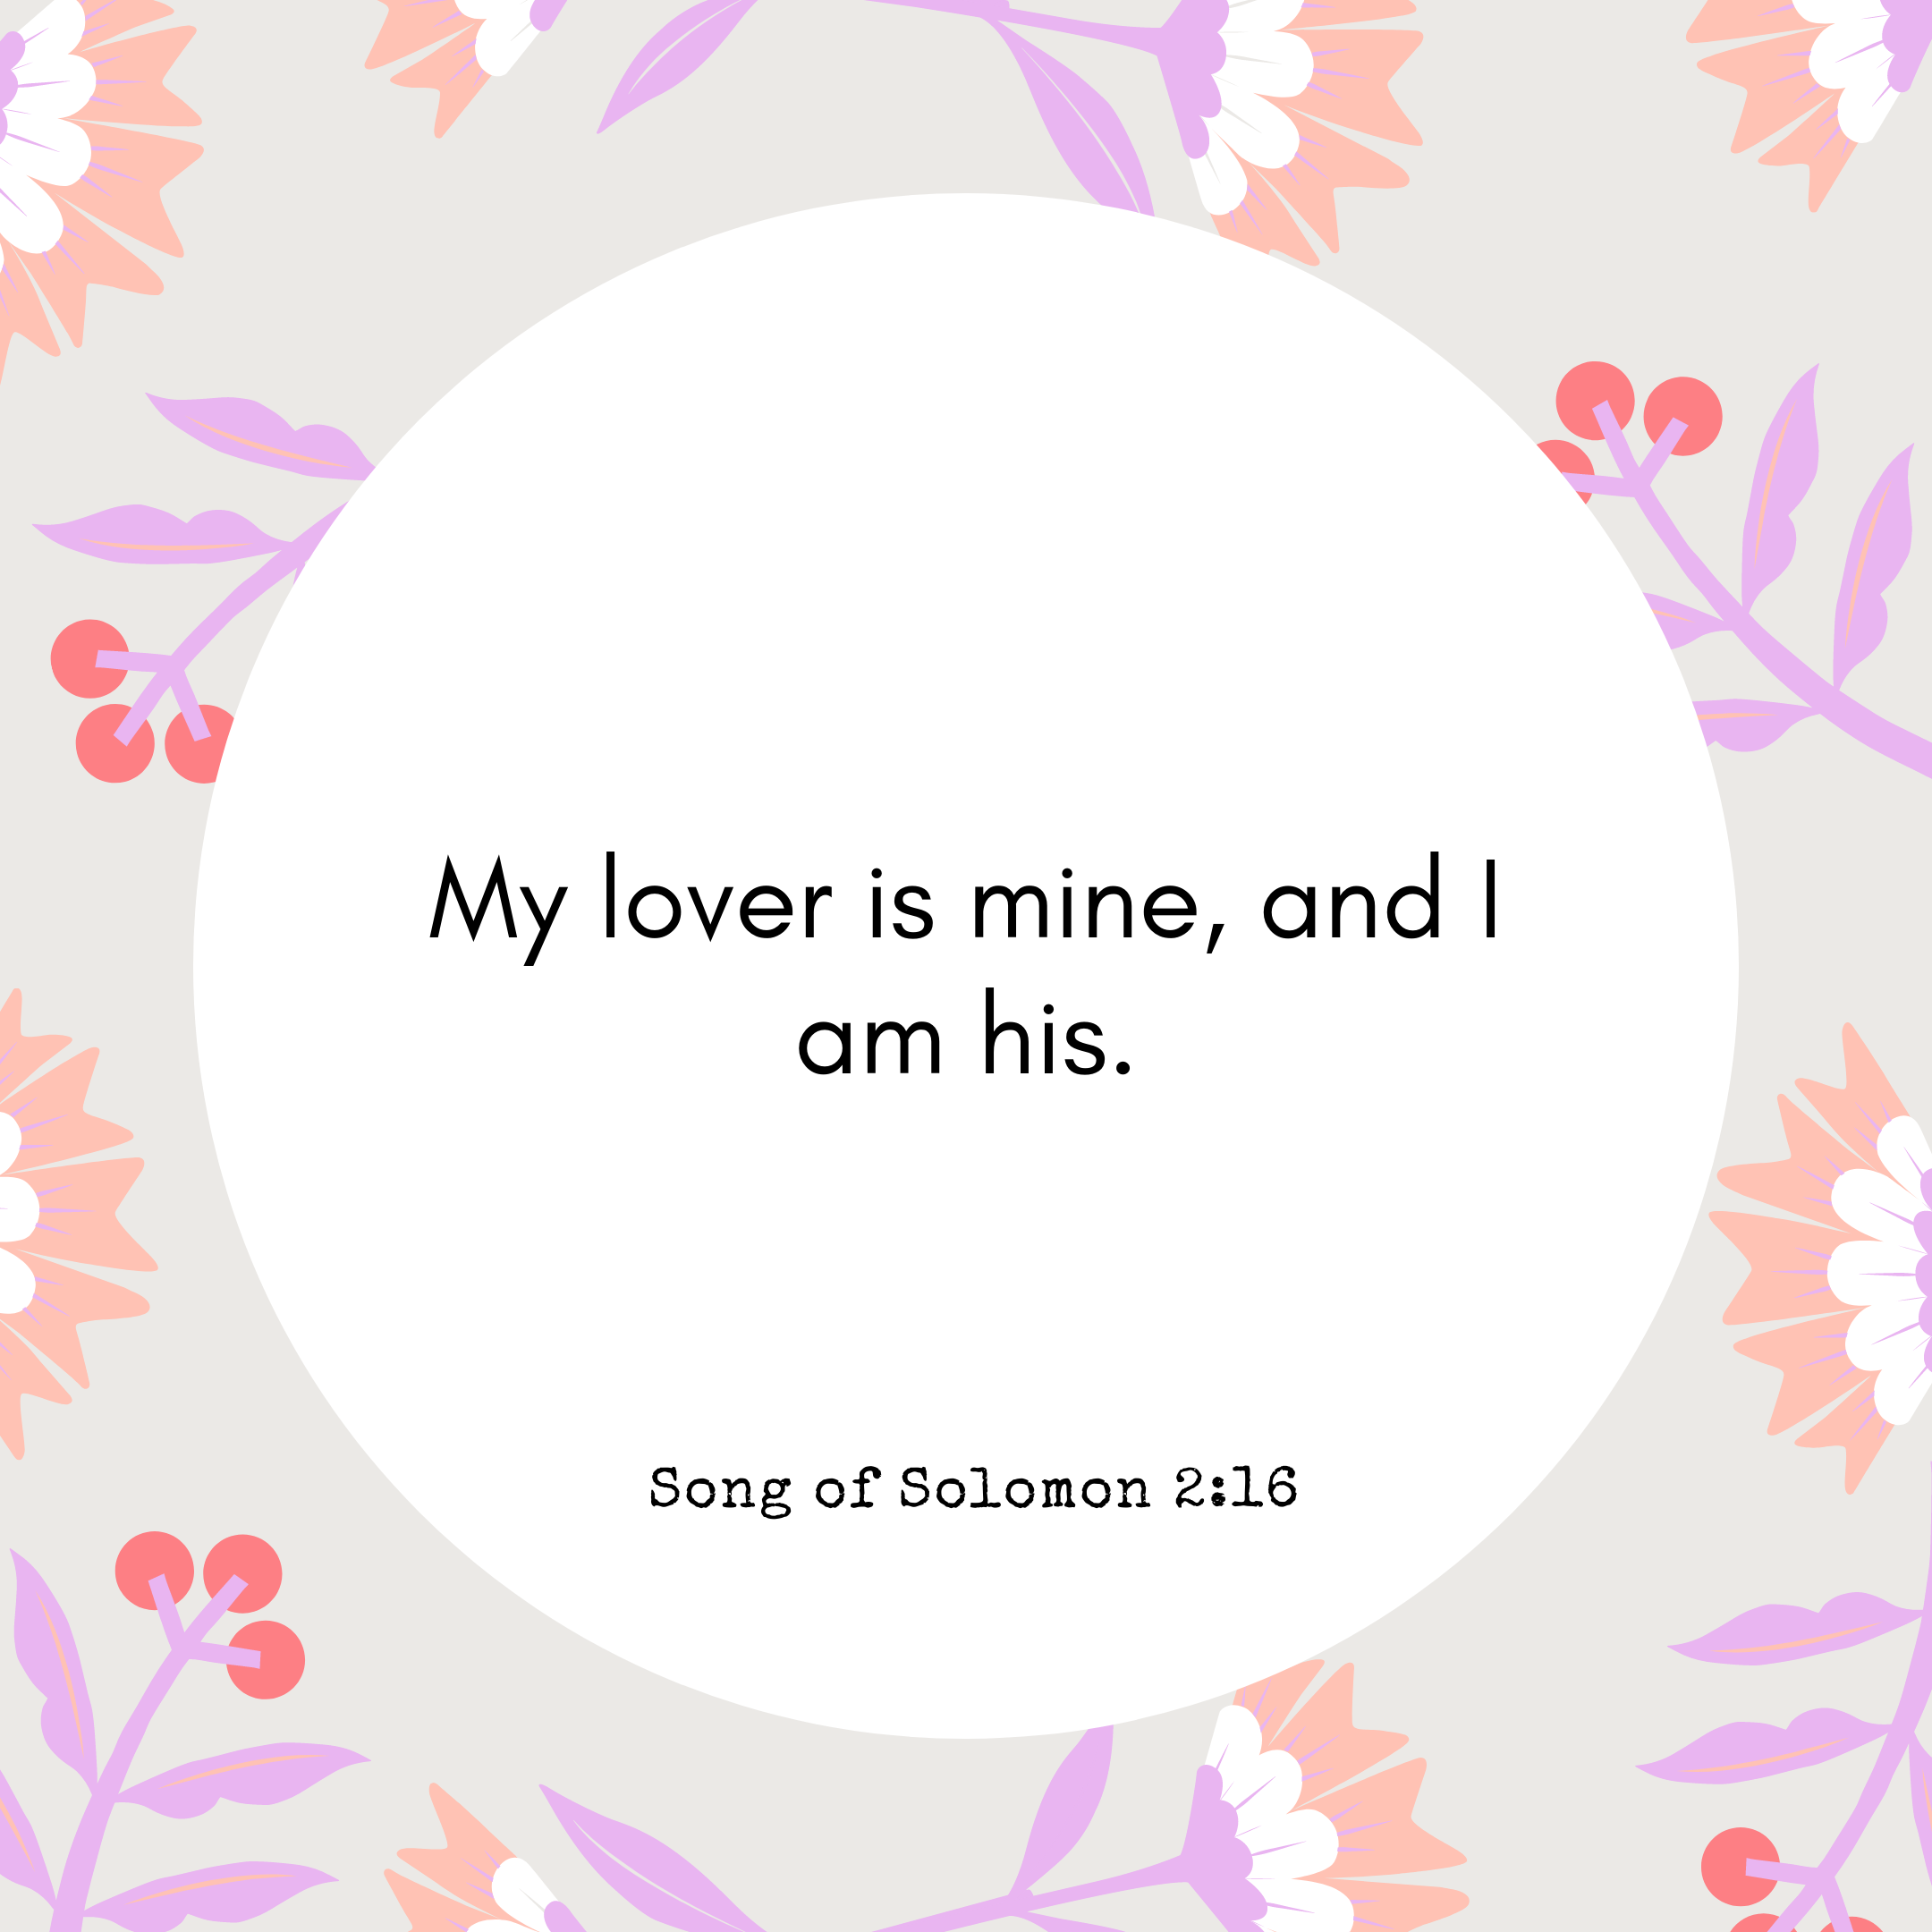 Song of Solomon 2:16 My lover is mine, and I am his.